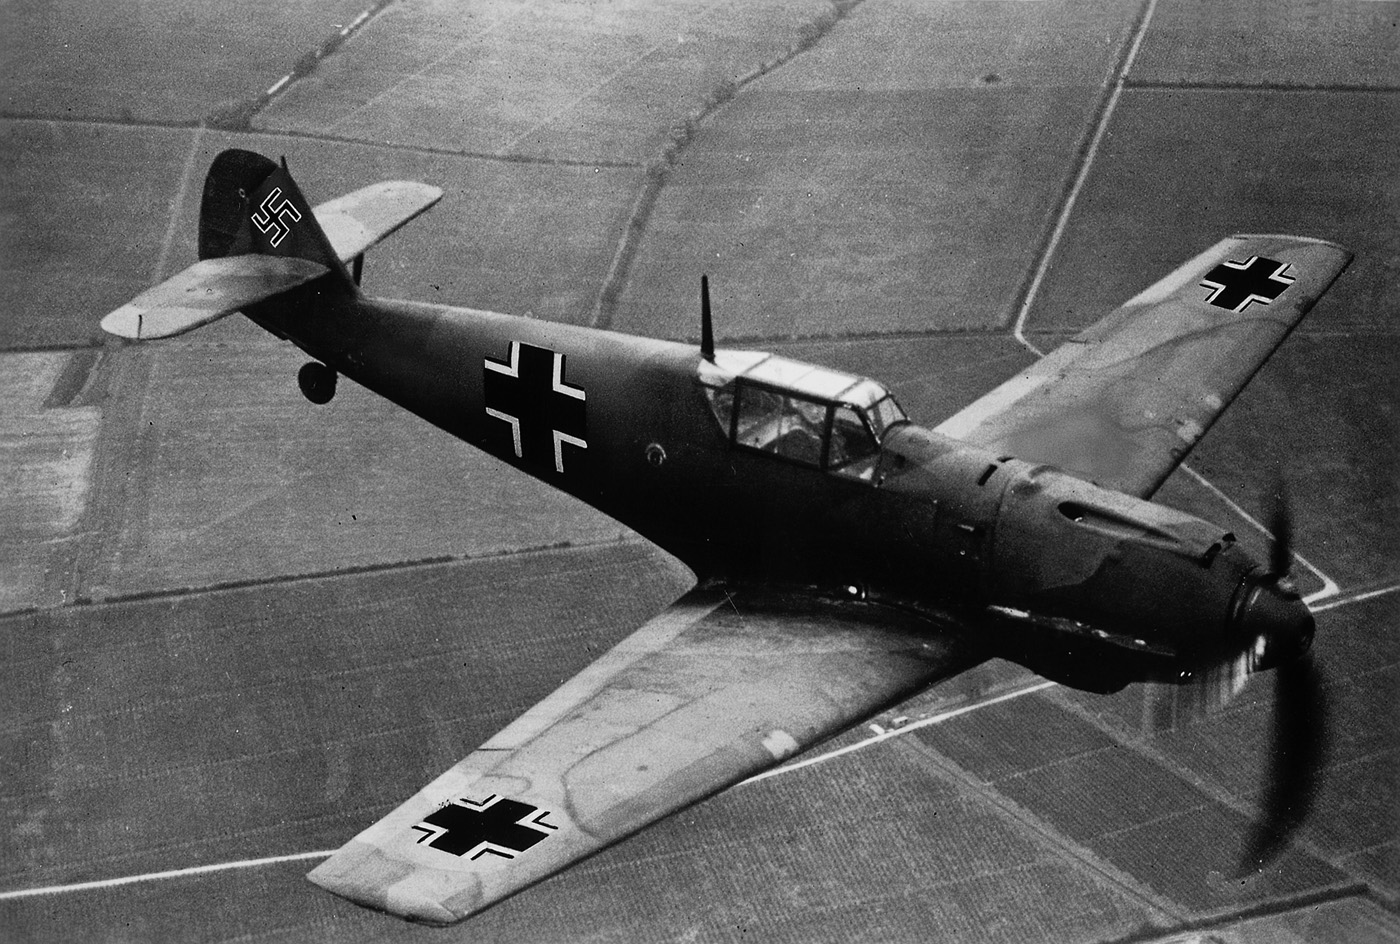 Messerschmitt Bf 109 | Aircraft | Weapons & Technology | German War Machine